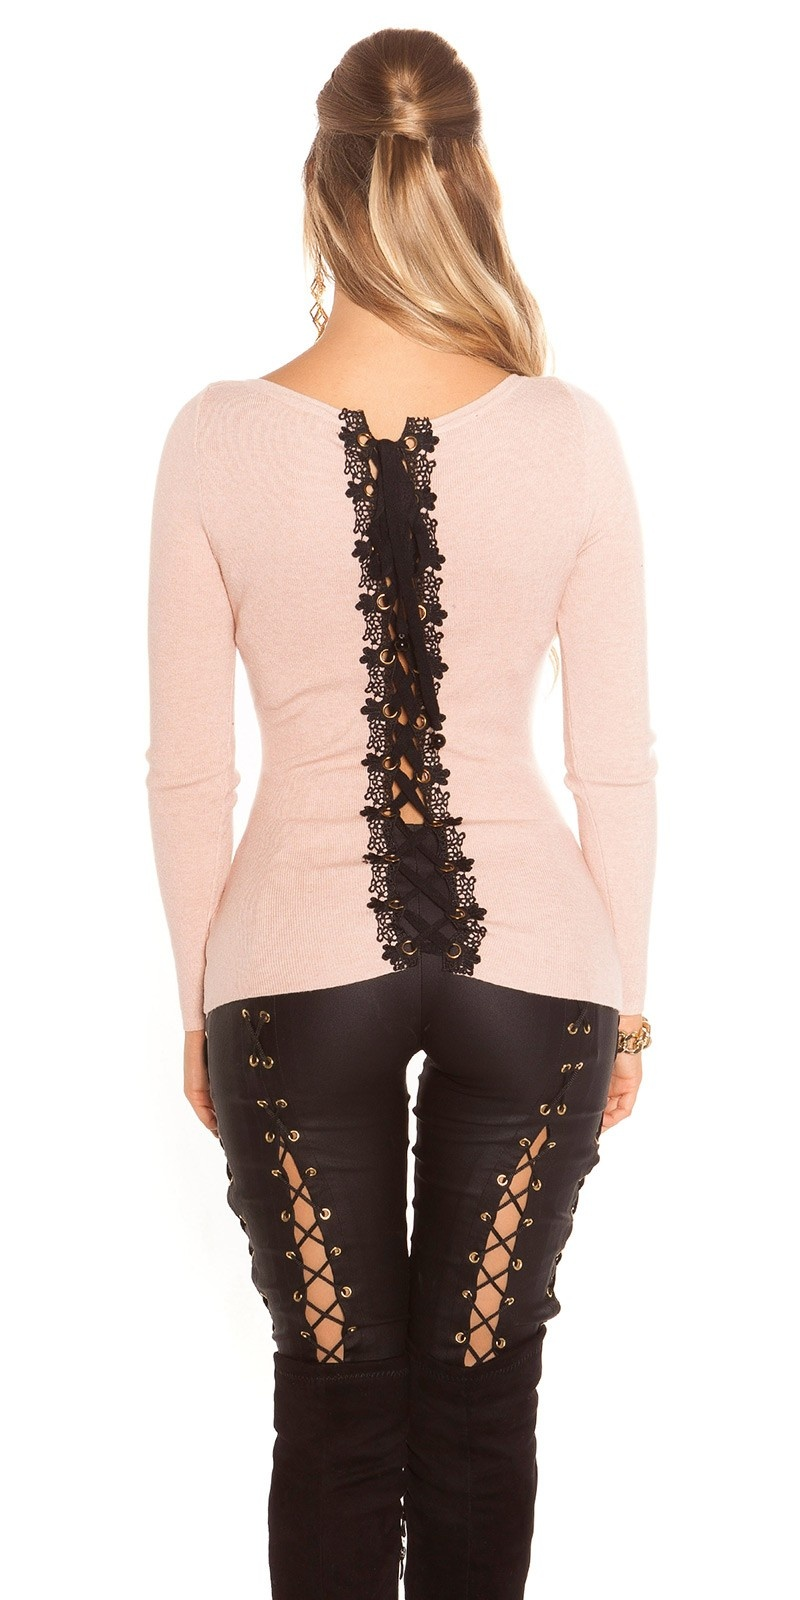 Sexy KouCla sweater with lacing & embroidery Antiquepink